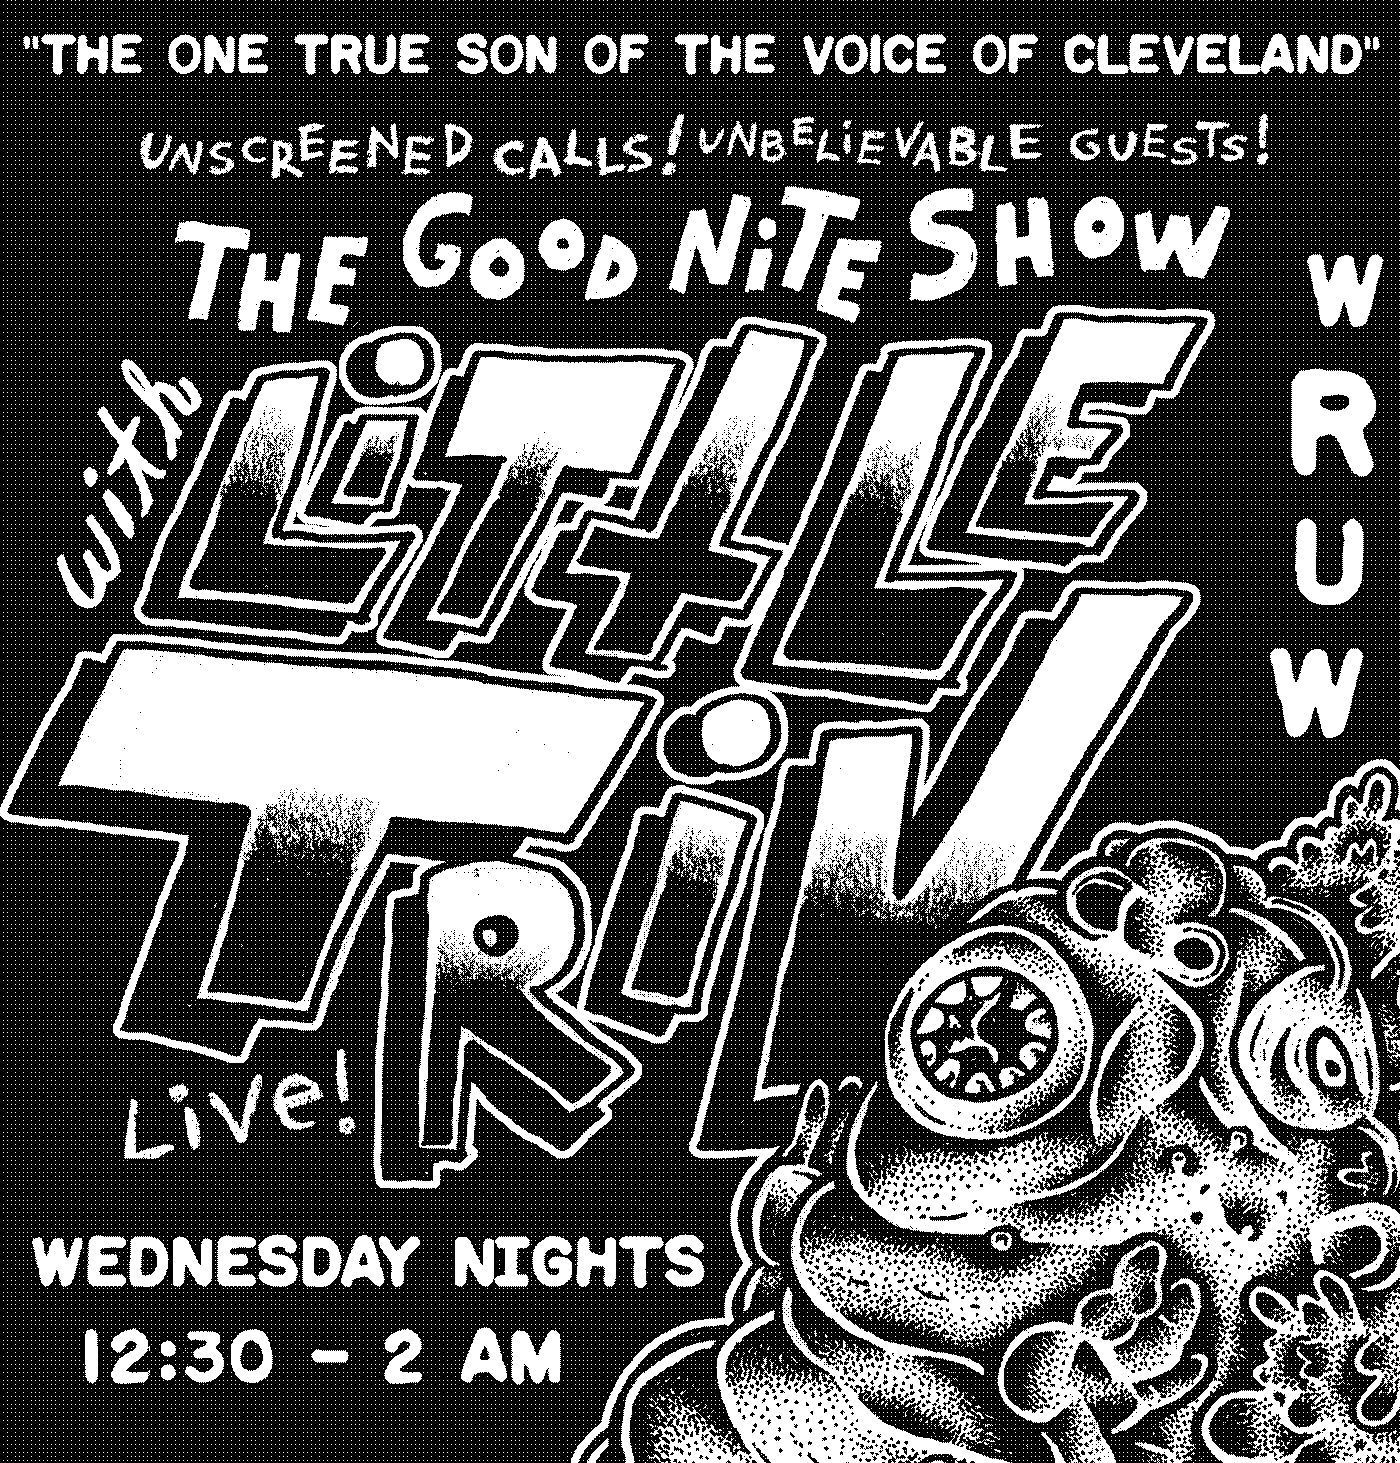 The Good Nite Show with Little Triv